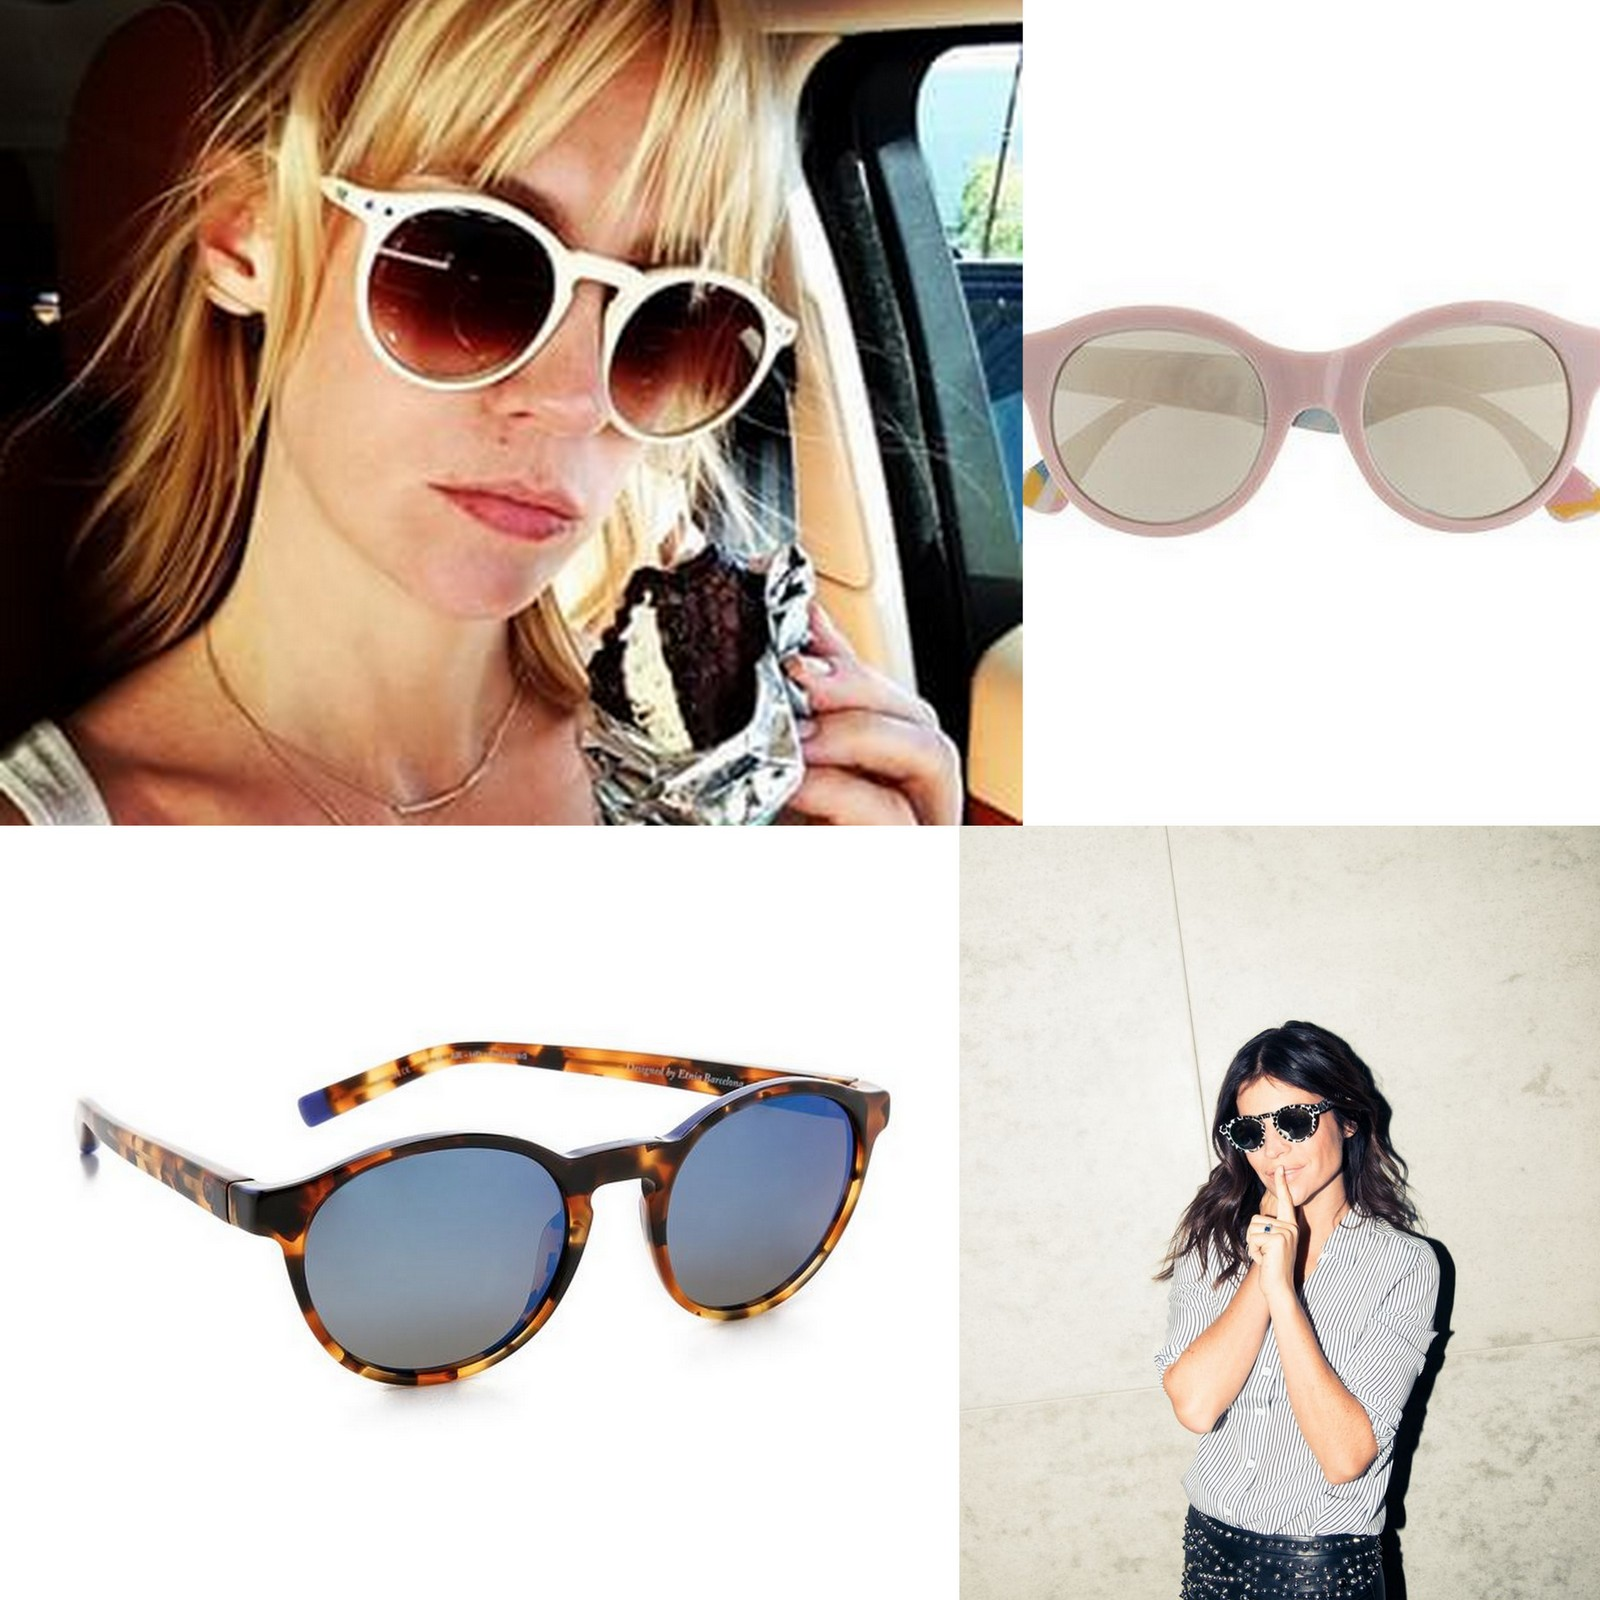 Sunglasses January Jones